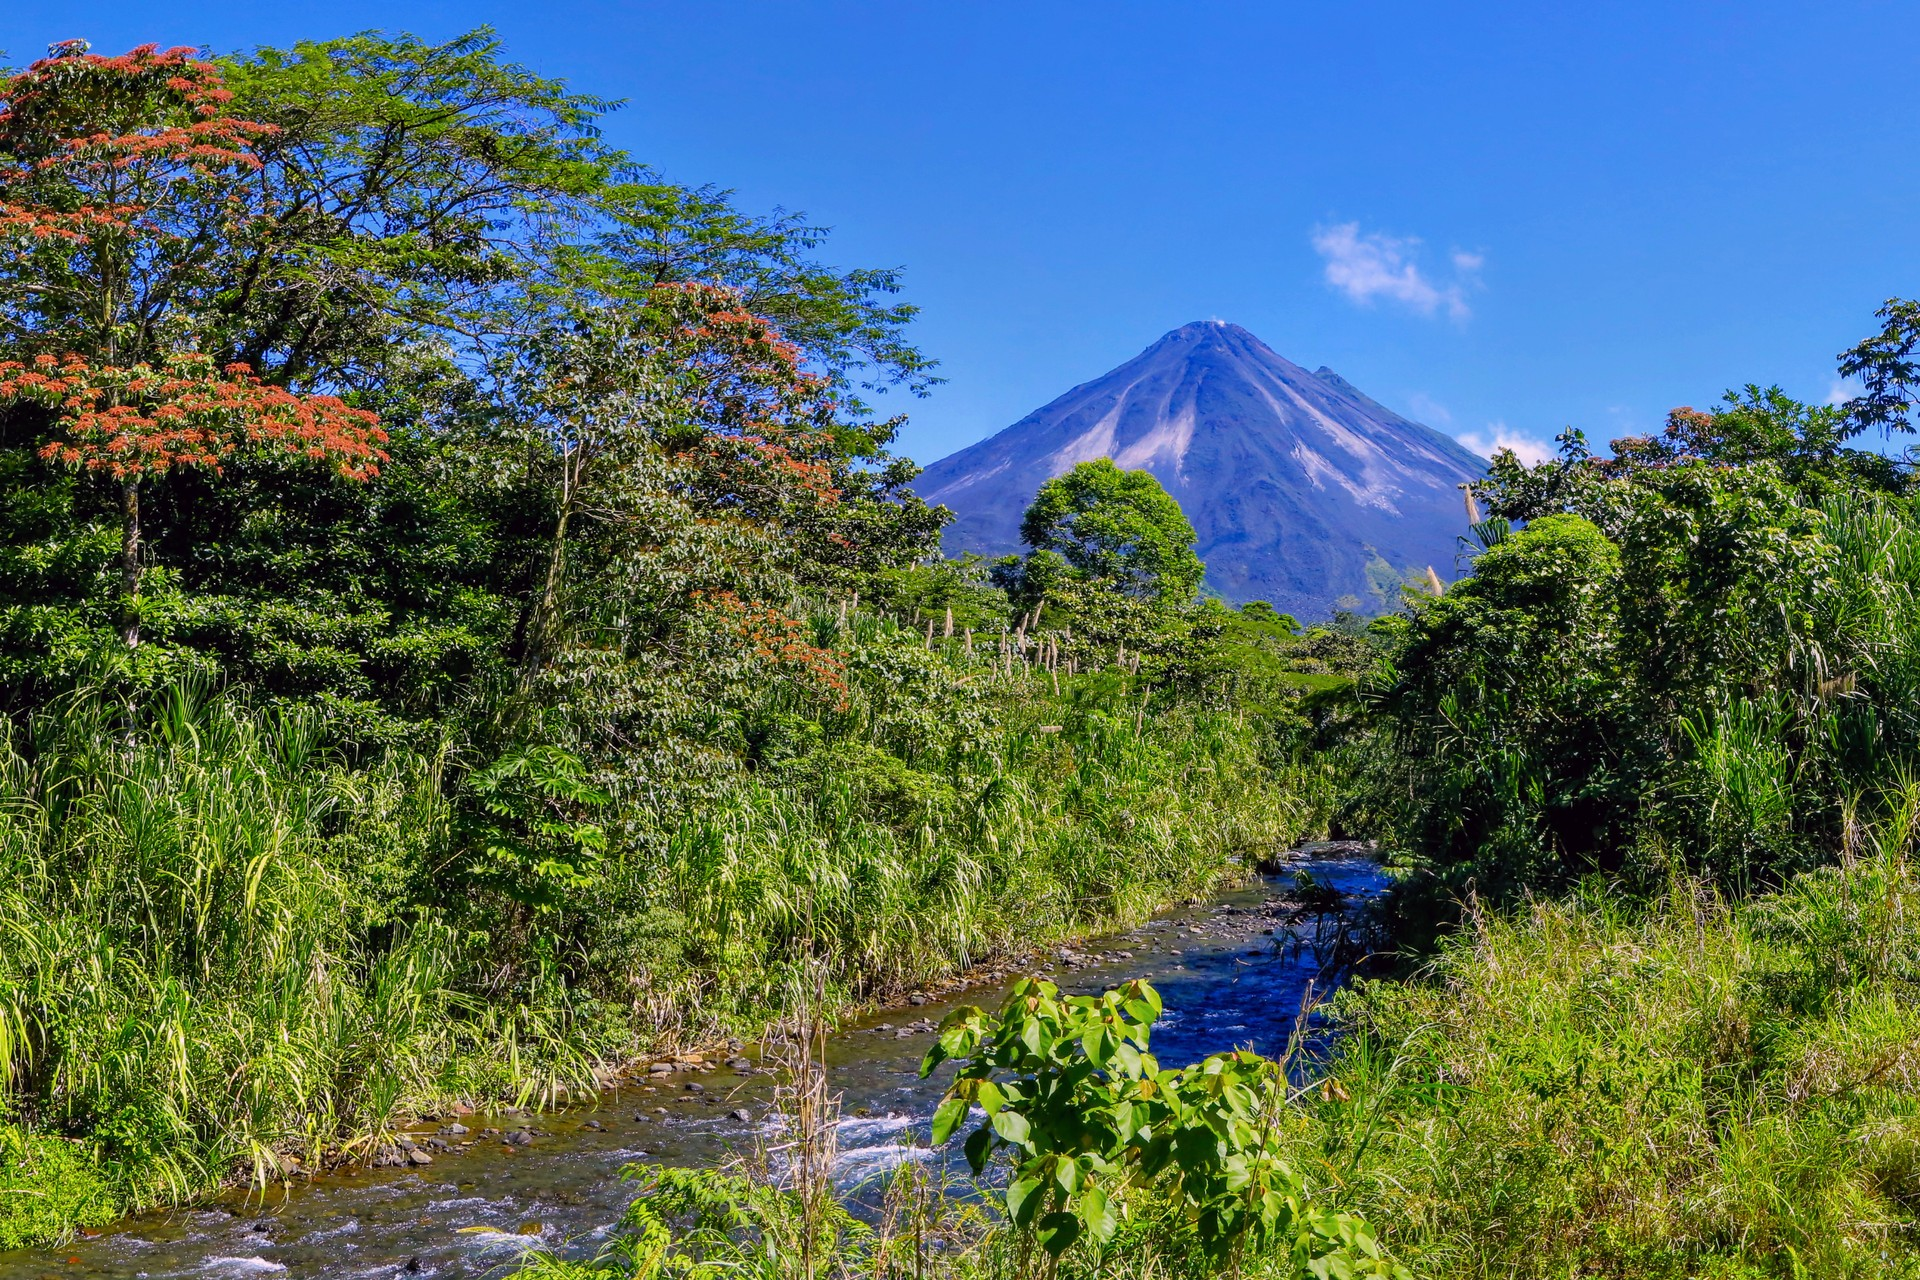 The National Parks of Costa Rica: Arenal Volcano